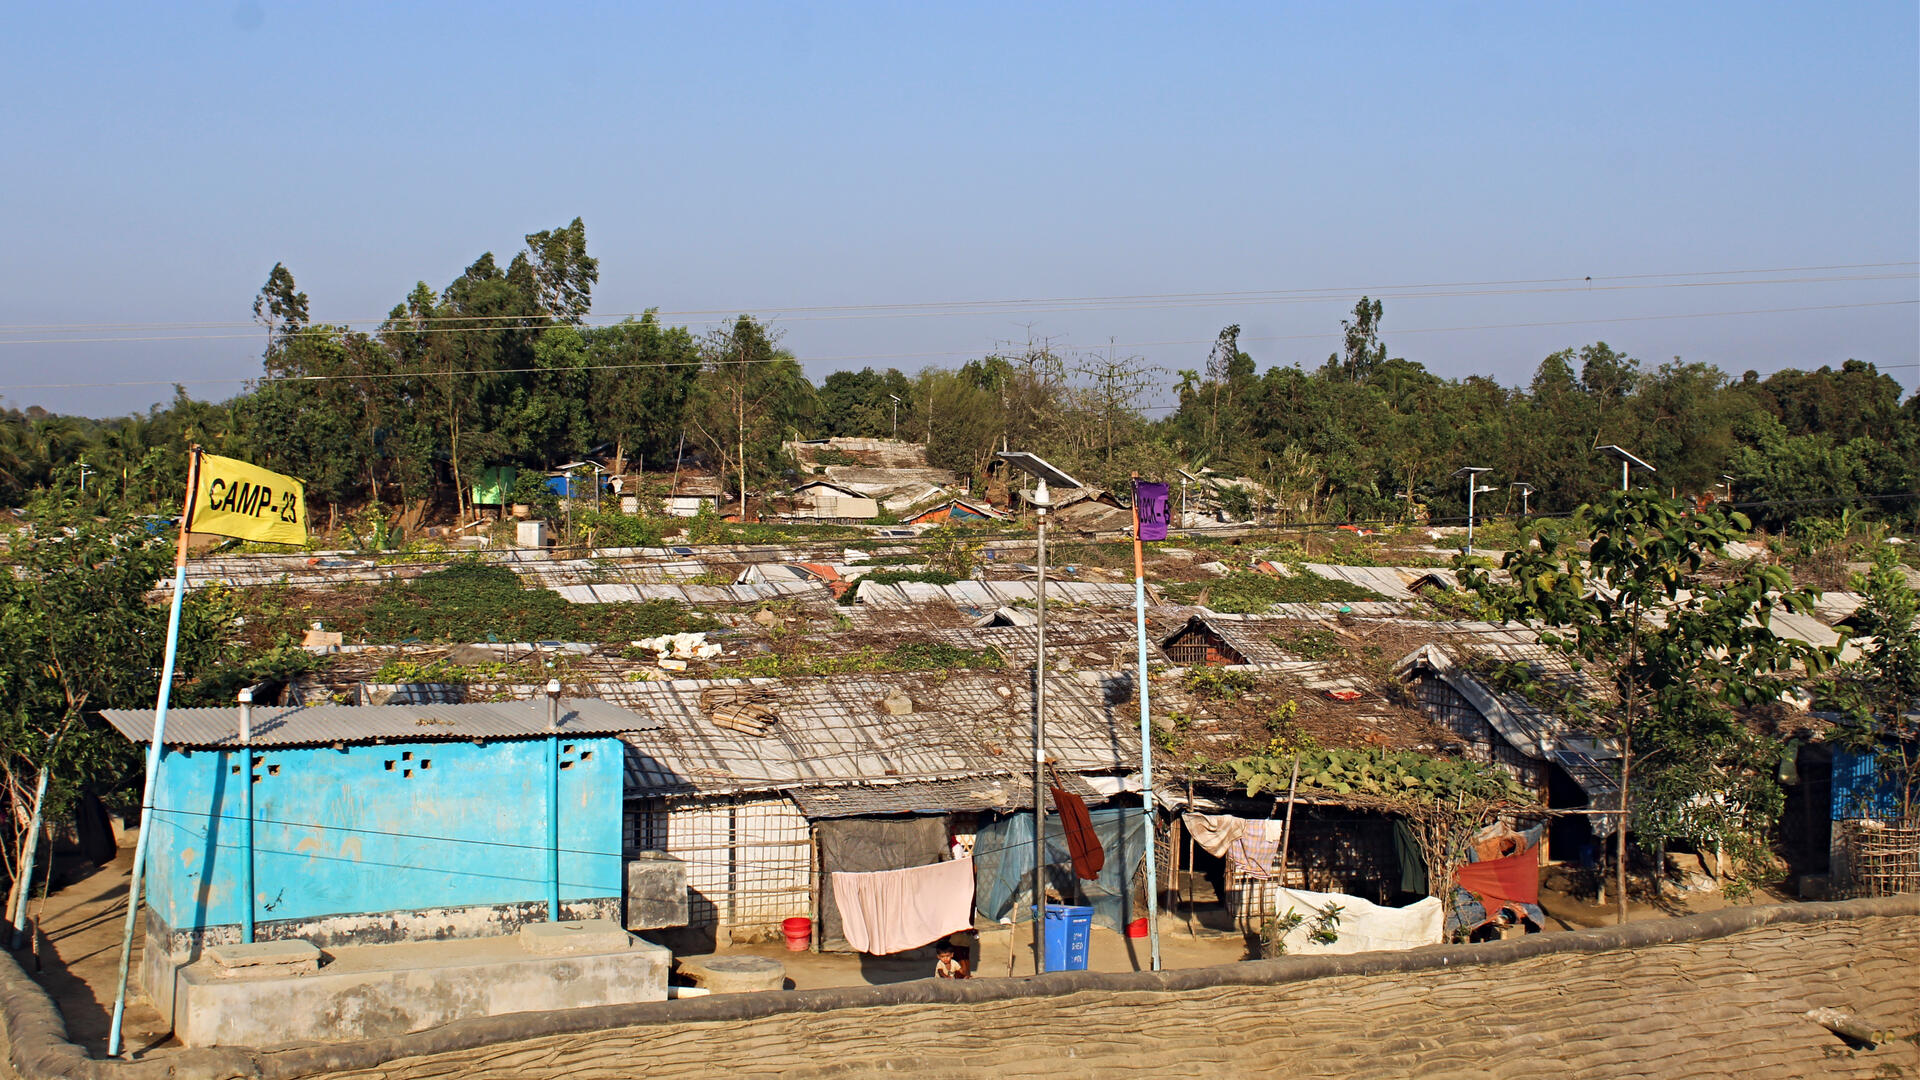 A panoramic view of the crowded Cox's Bazar refugee camp in Bangladesh